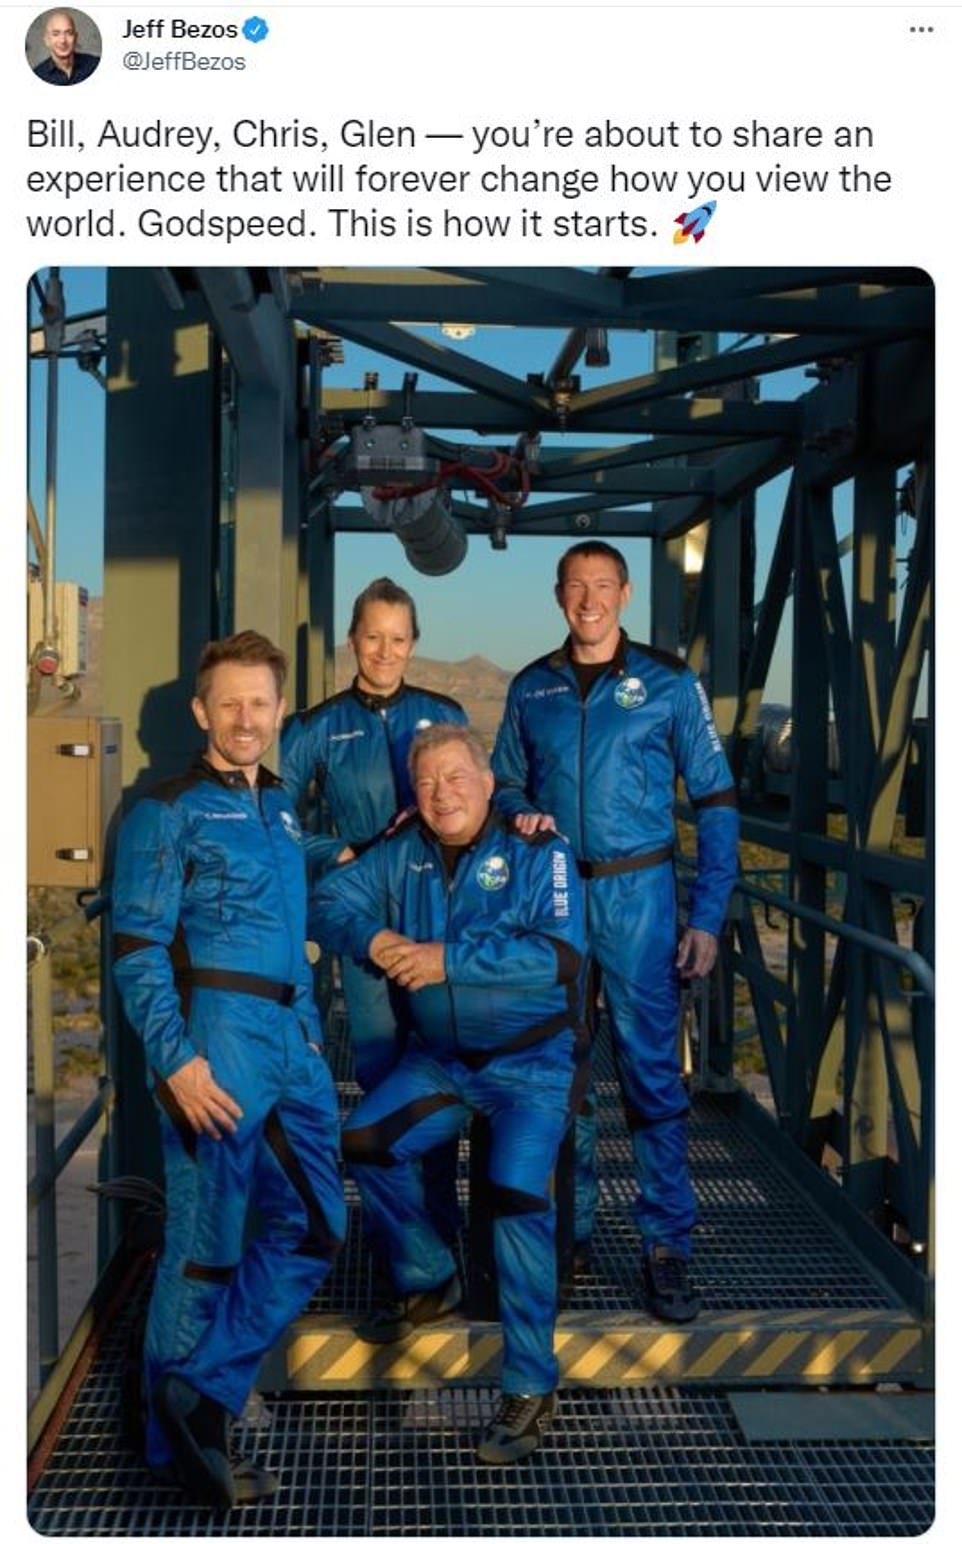 The crew, which also includes Chris Boshuizen, Glen de Vries and Audrey Powers, are launching aboard Blue Origin's 60-foot-tall New Shepard rocket at 10am ET from the company's Launch Site One in Van Horn, Texas